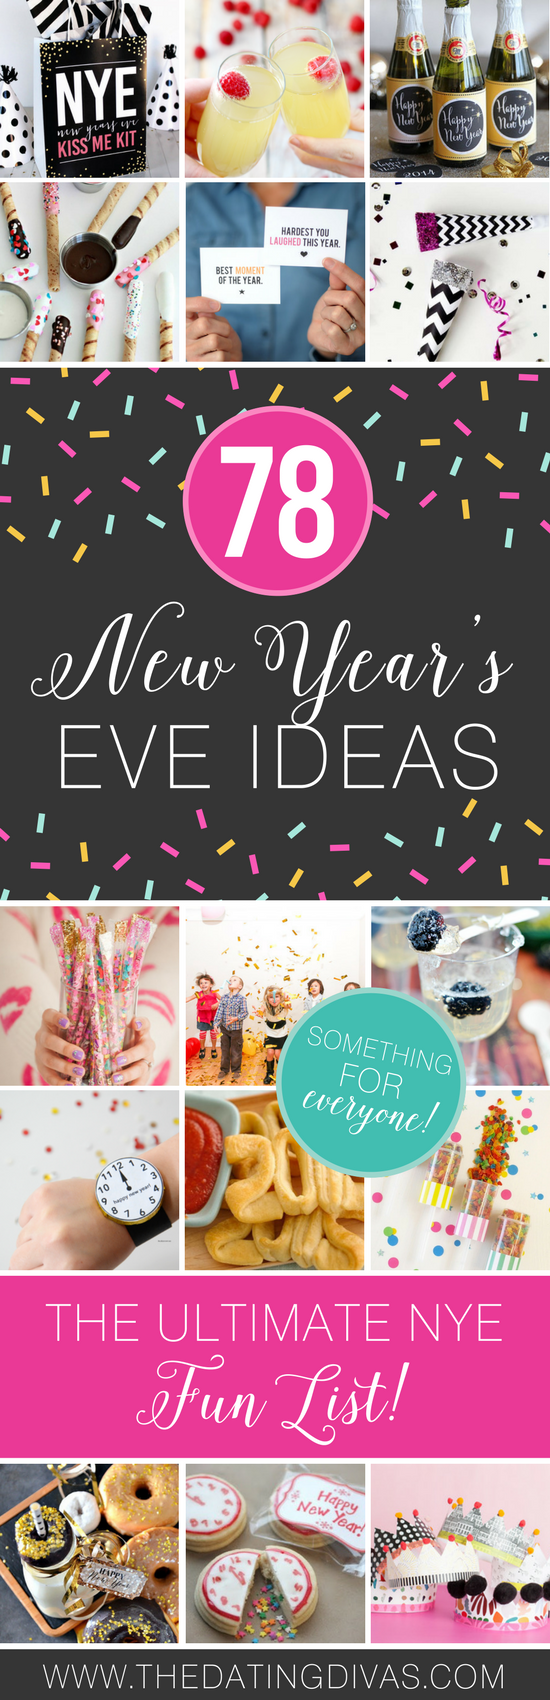 New Years Eve Ideas The Dating Divas